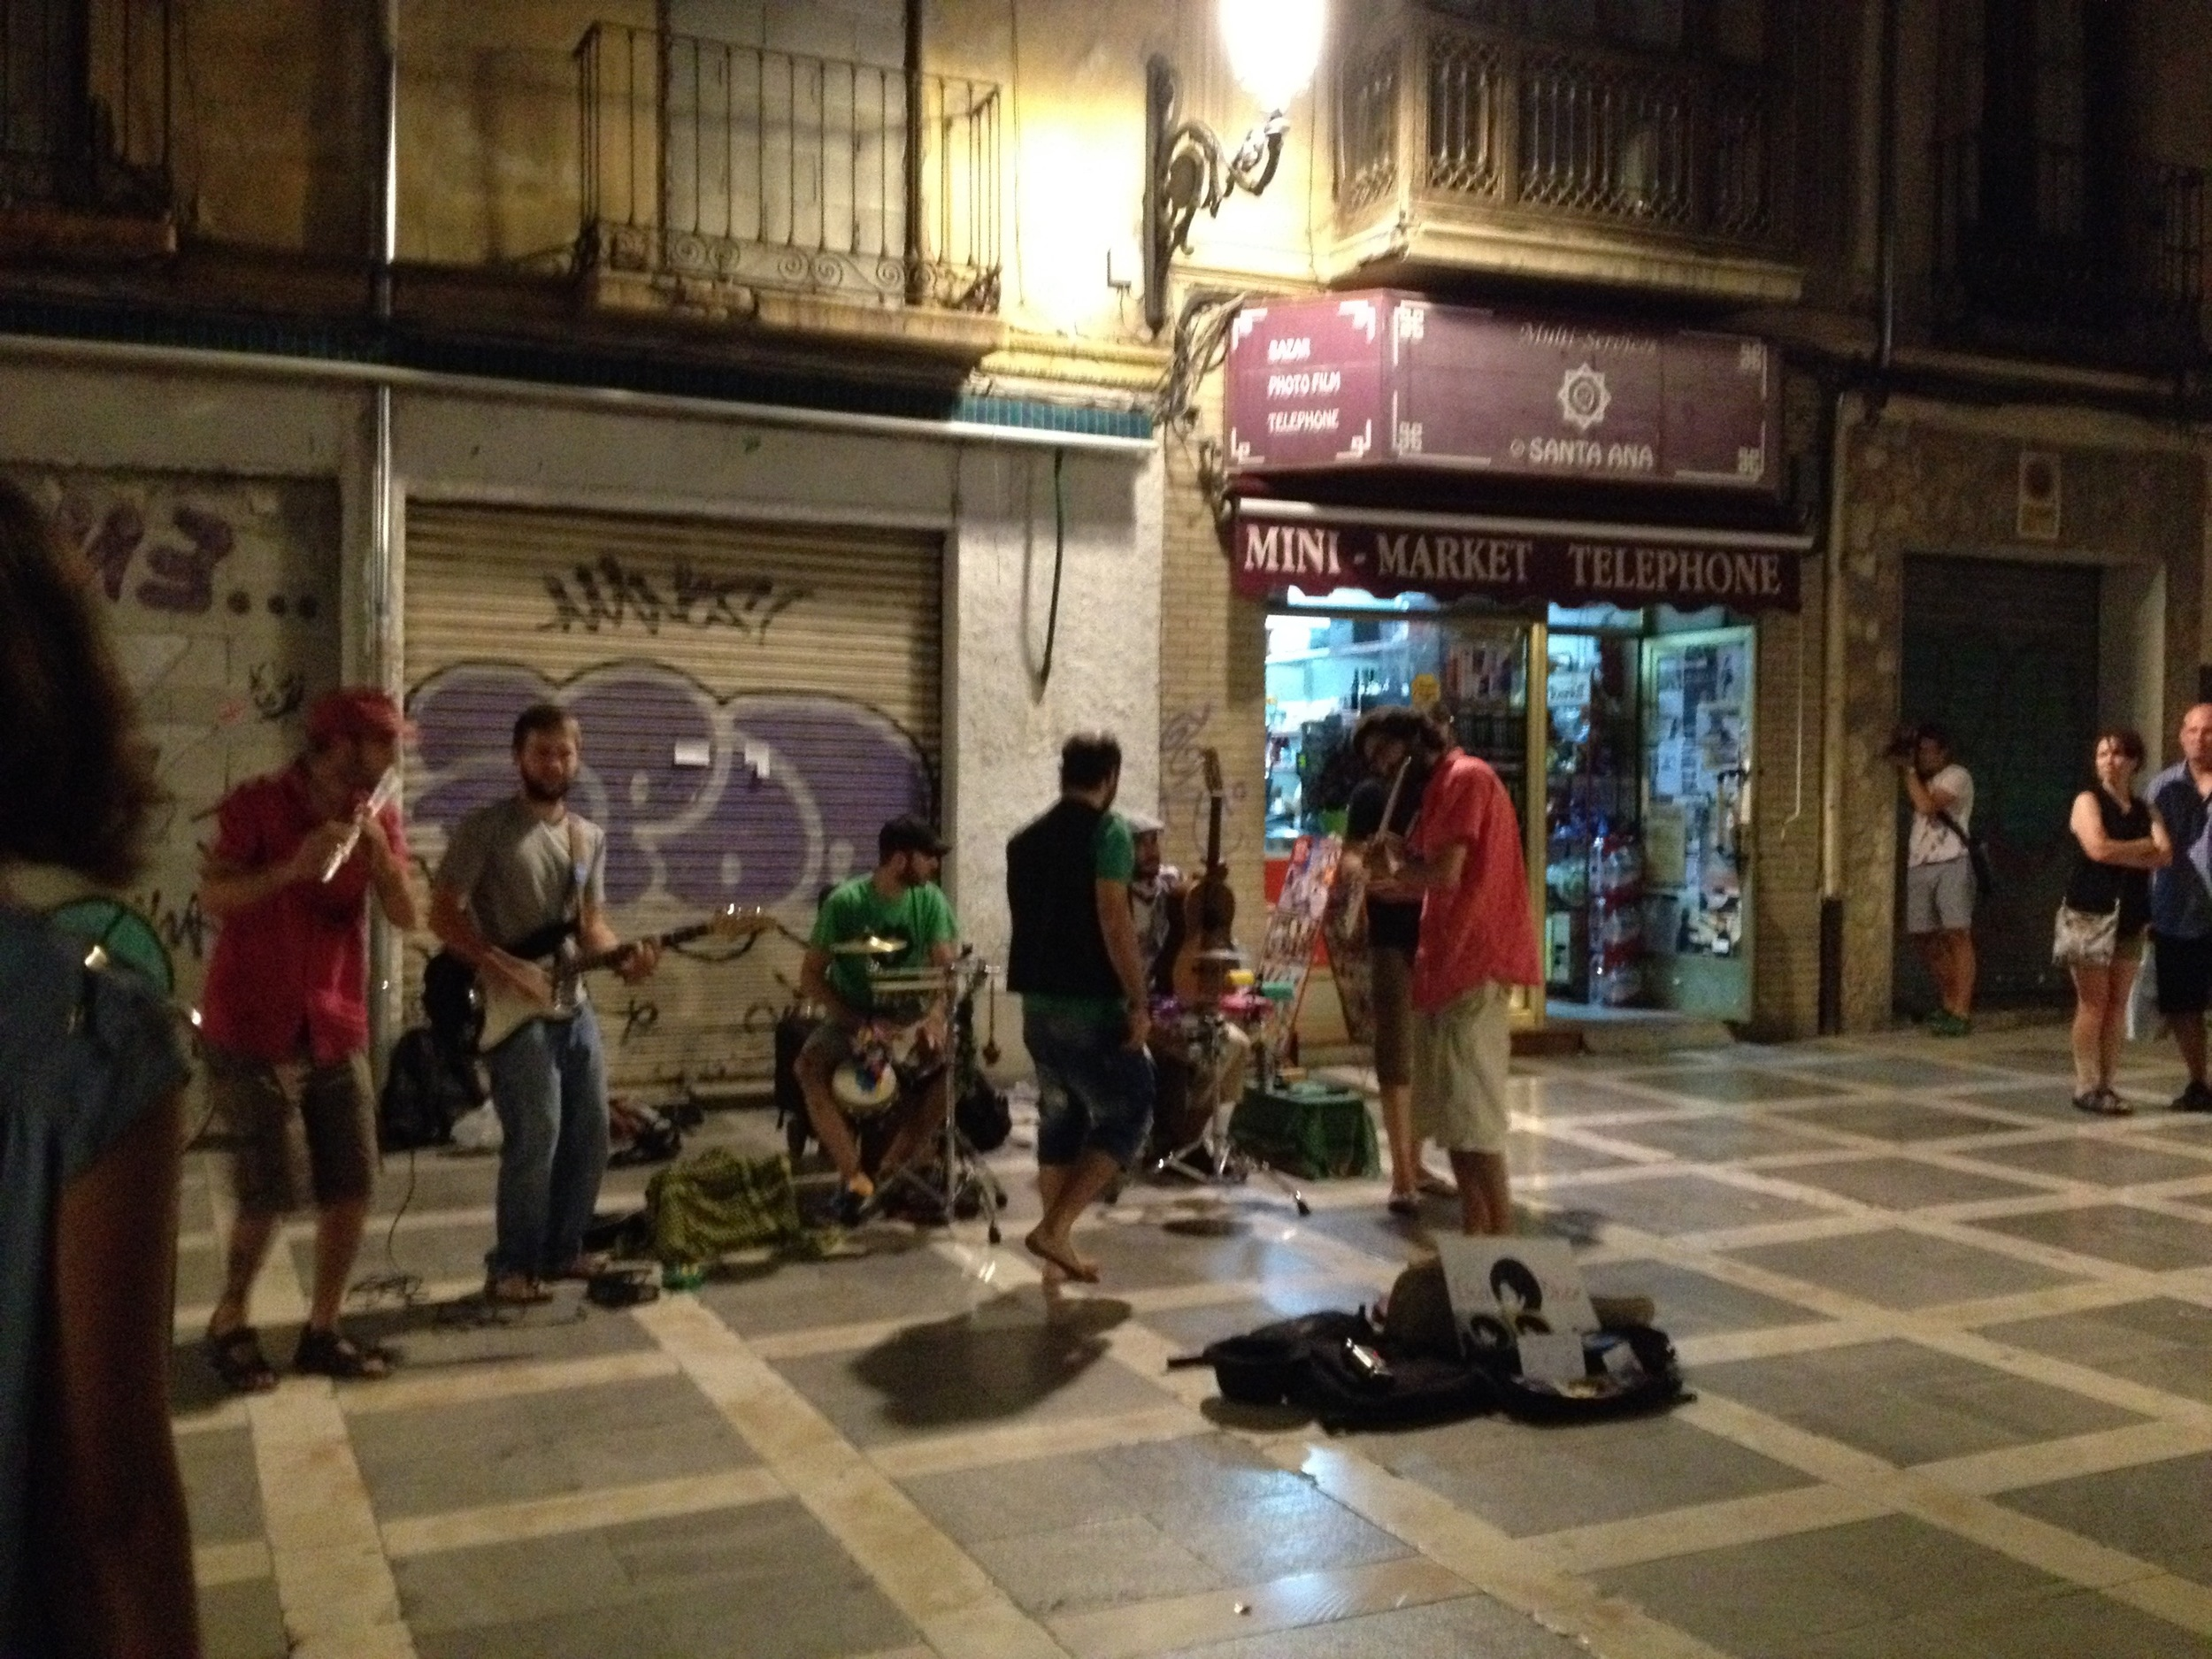 Street musicians jamming in Plaza Nueva, a fairly normal sight during Granada's warmer months.